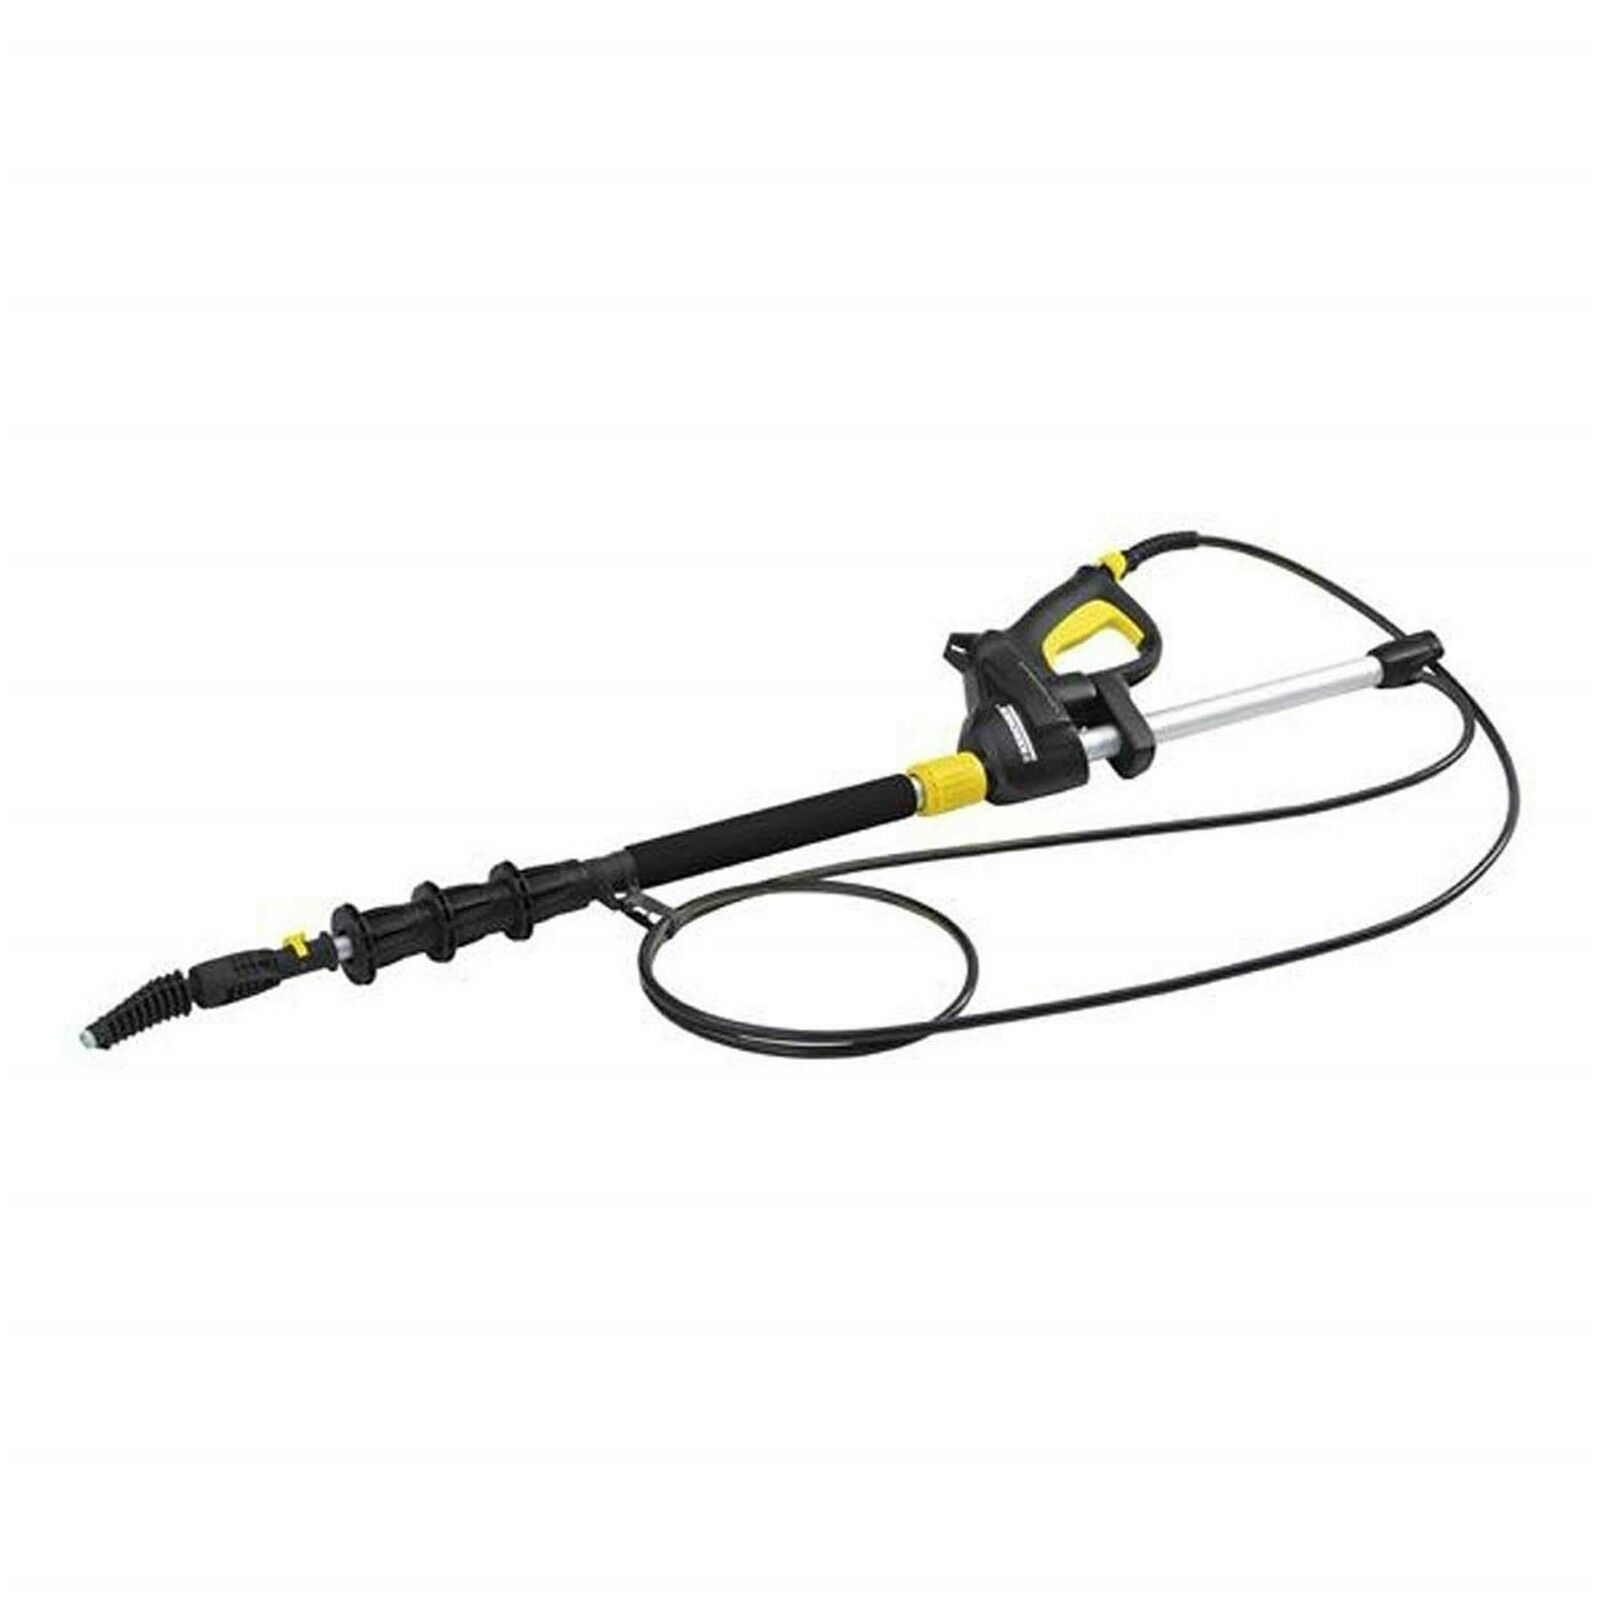 Karcher 2.642-347.0 telescopic lance up to 4 m m m - Shutters and Facades ab37be